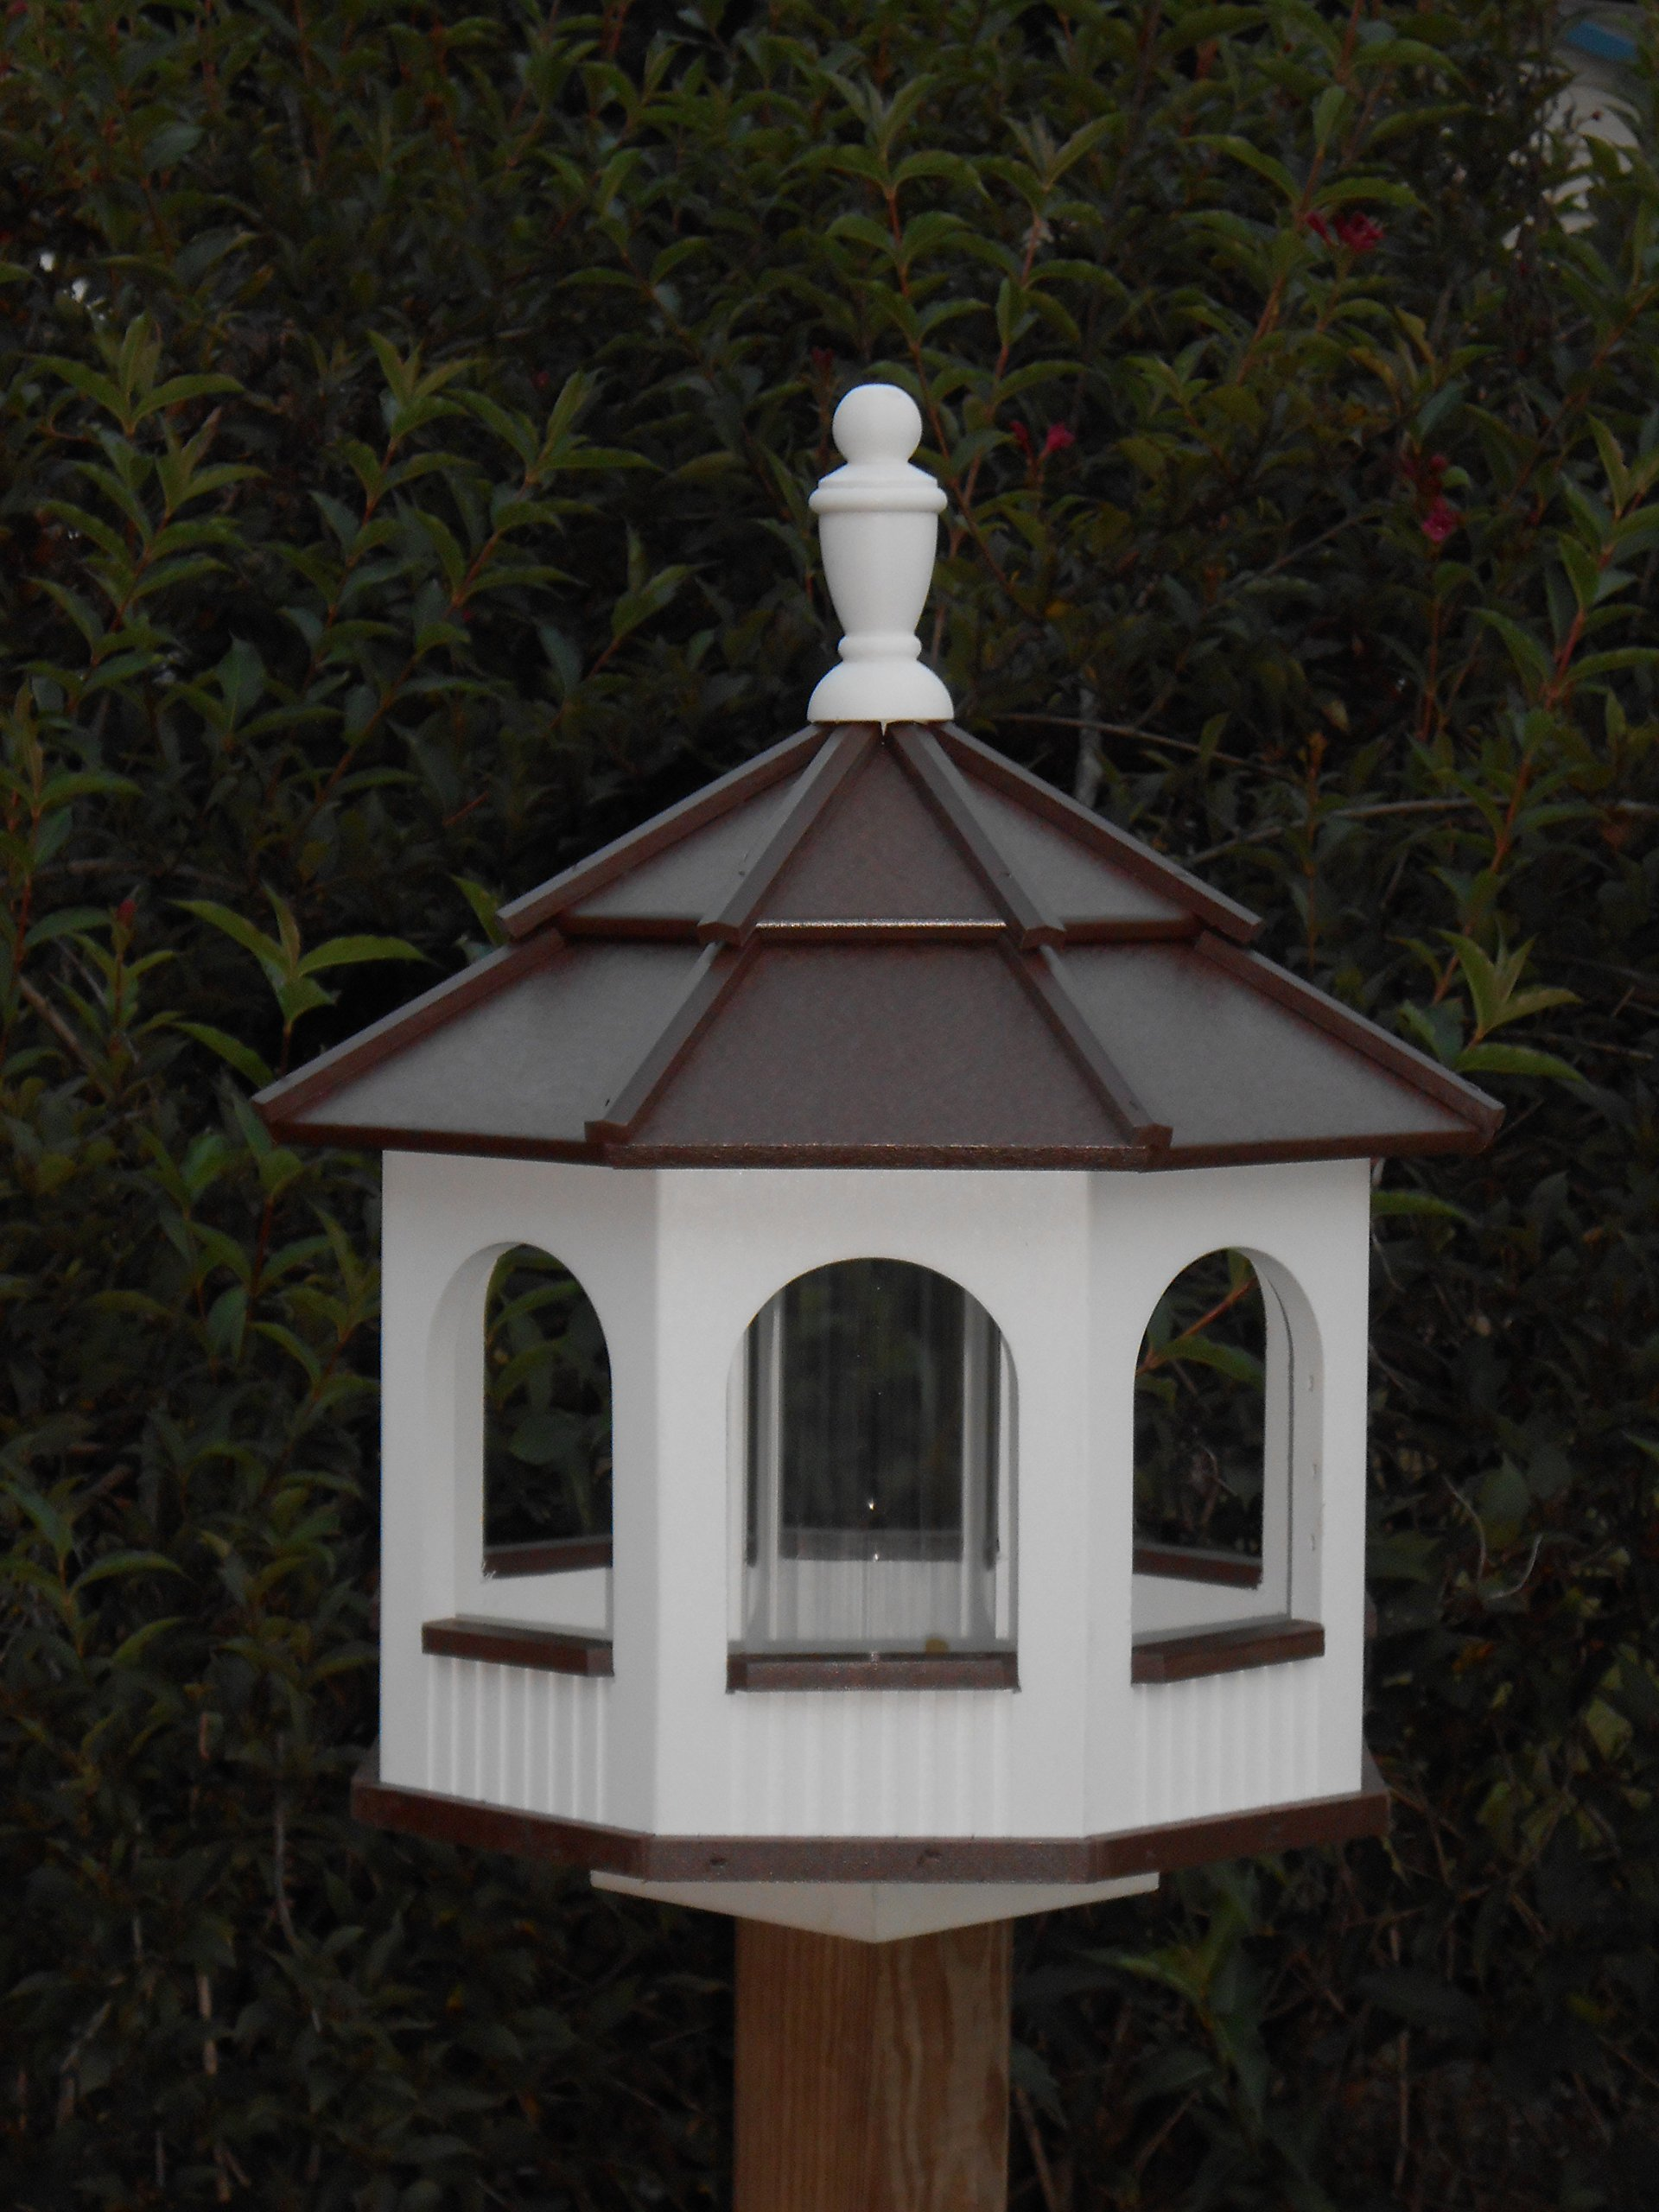 Large Gazebo Vinyl Bird Feeder Amish Homemade Handmade Handcrafted White & Brown